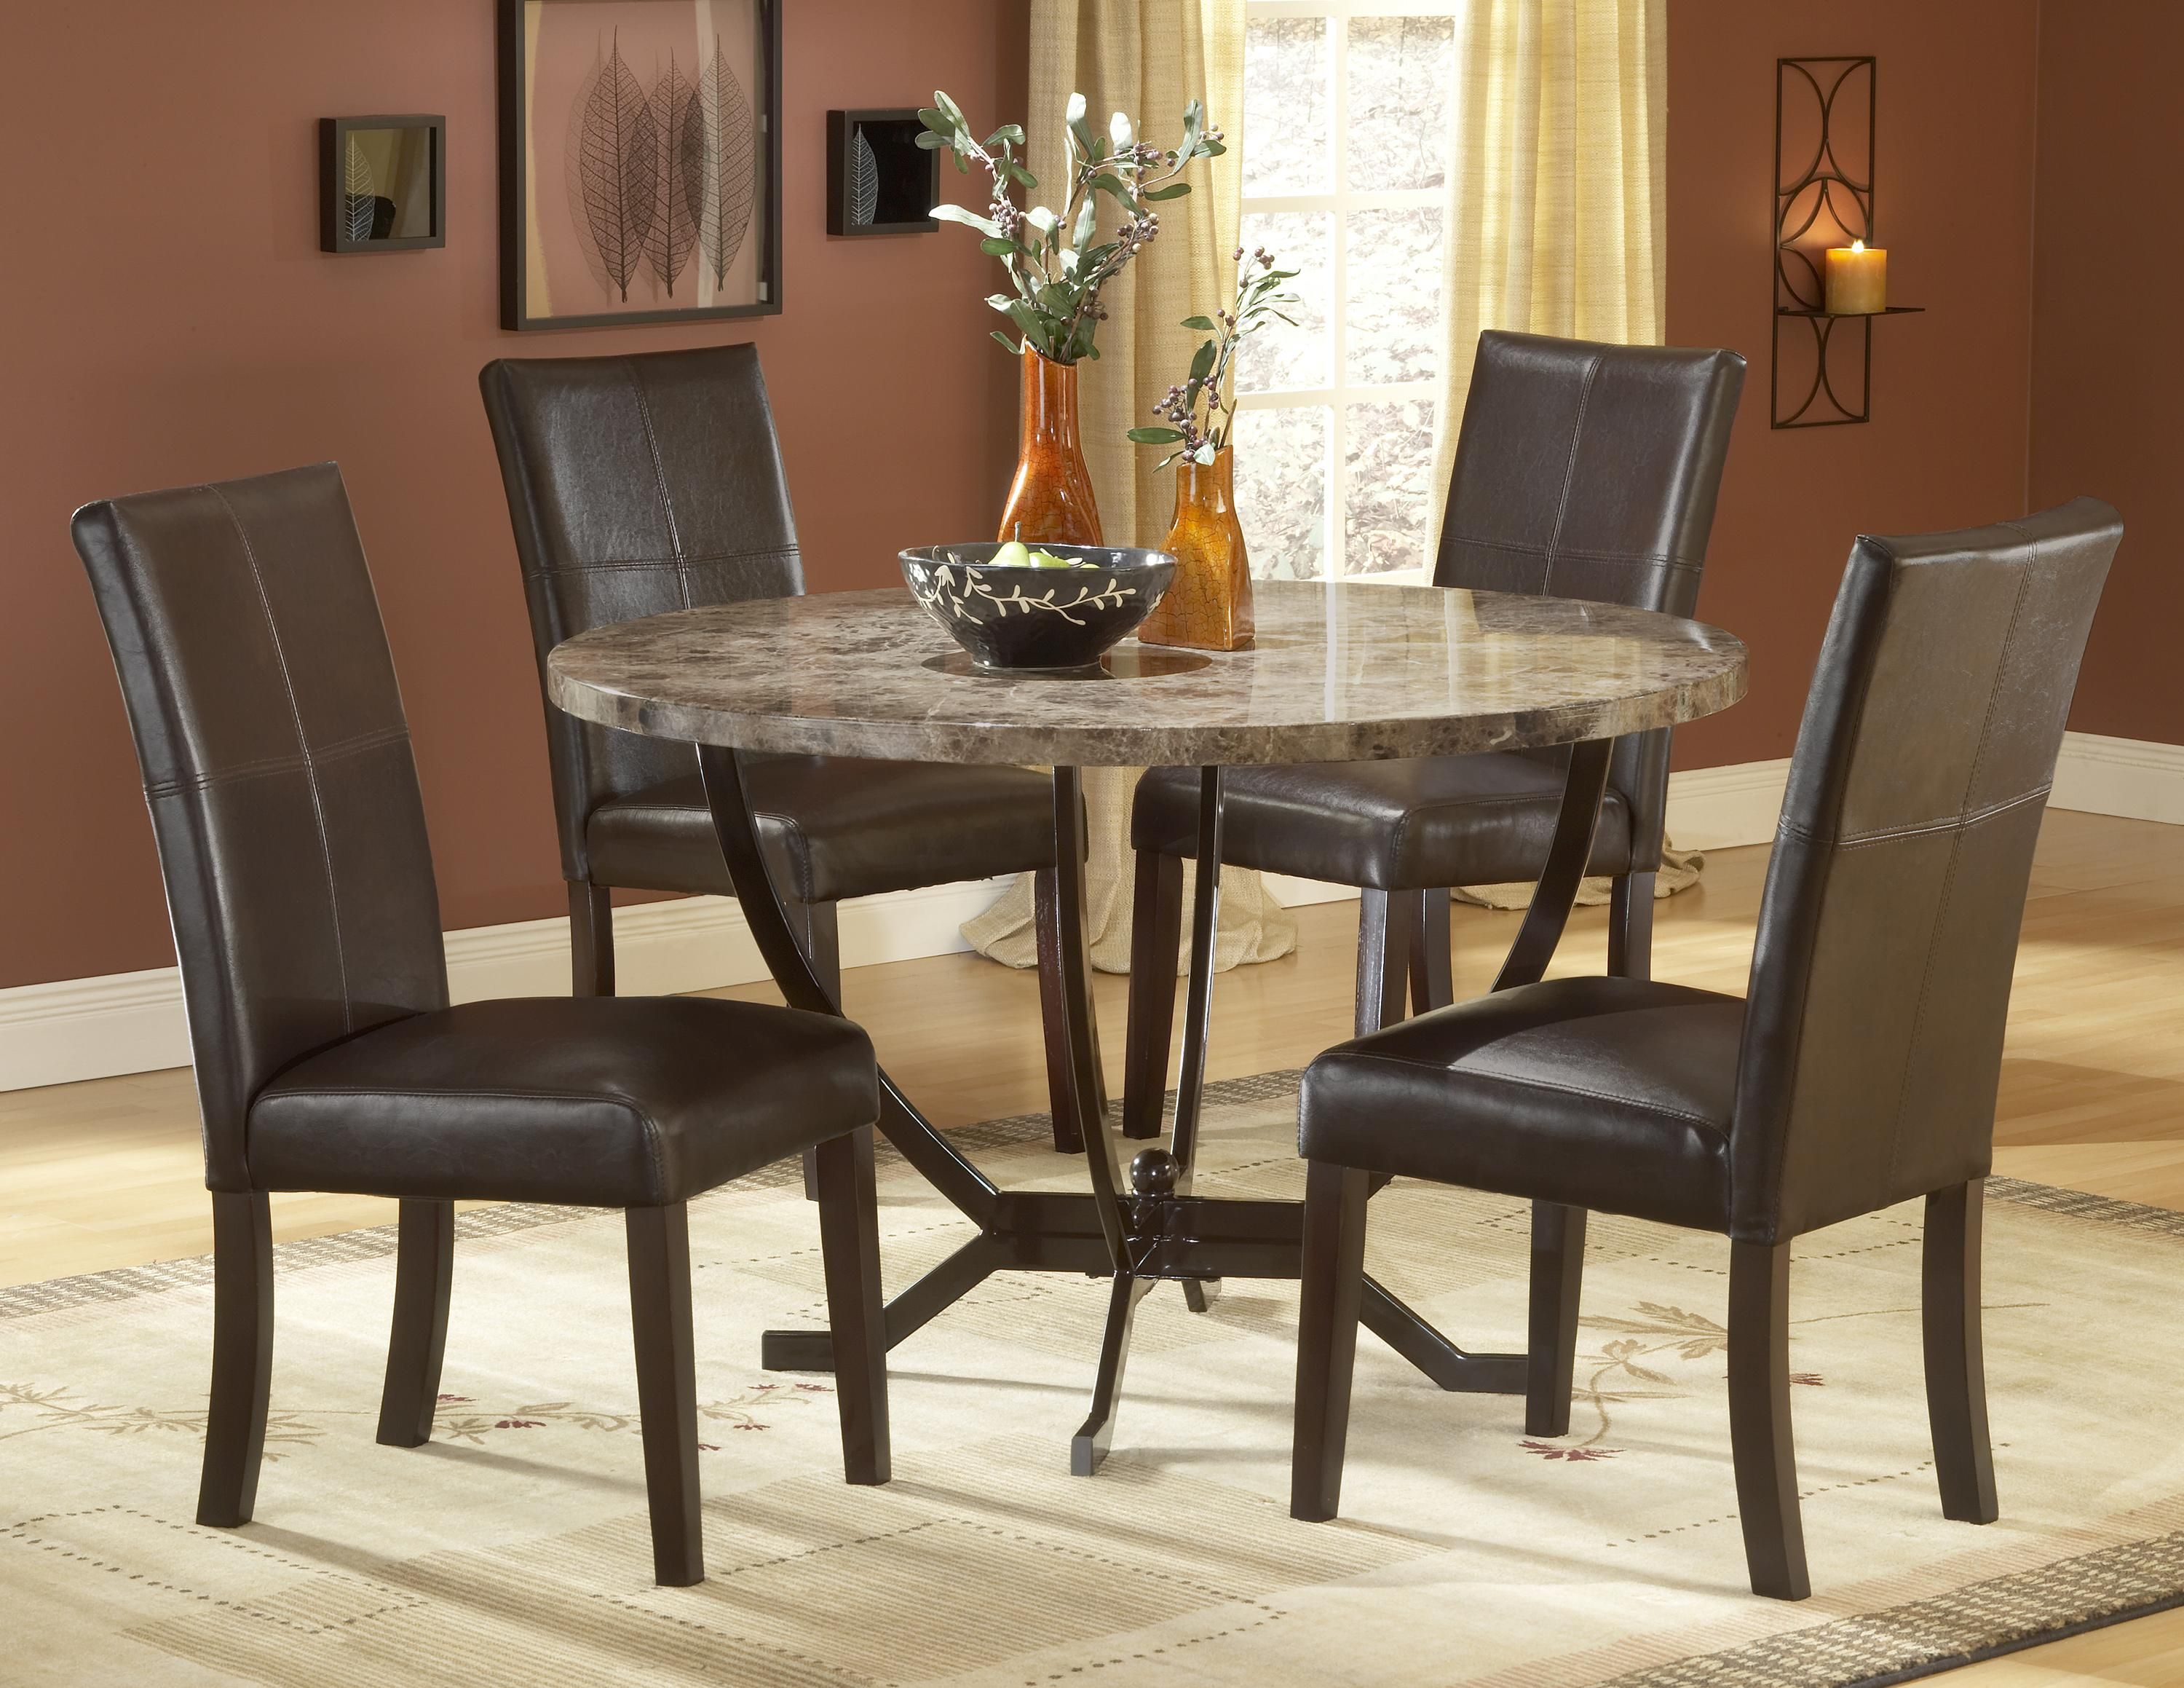 10 Small Dinette Set Design  Dinette Sets Large Rugs And Kitchen Endearing Dining Room 5 Piece Sets Decorating Inspiration